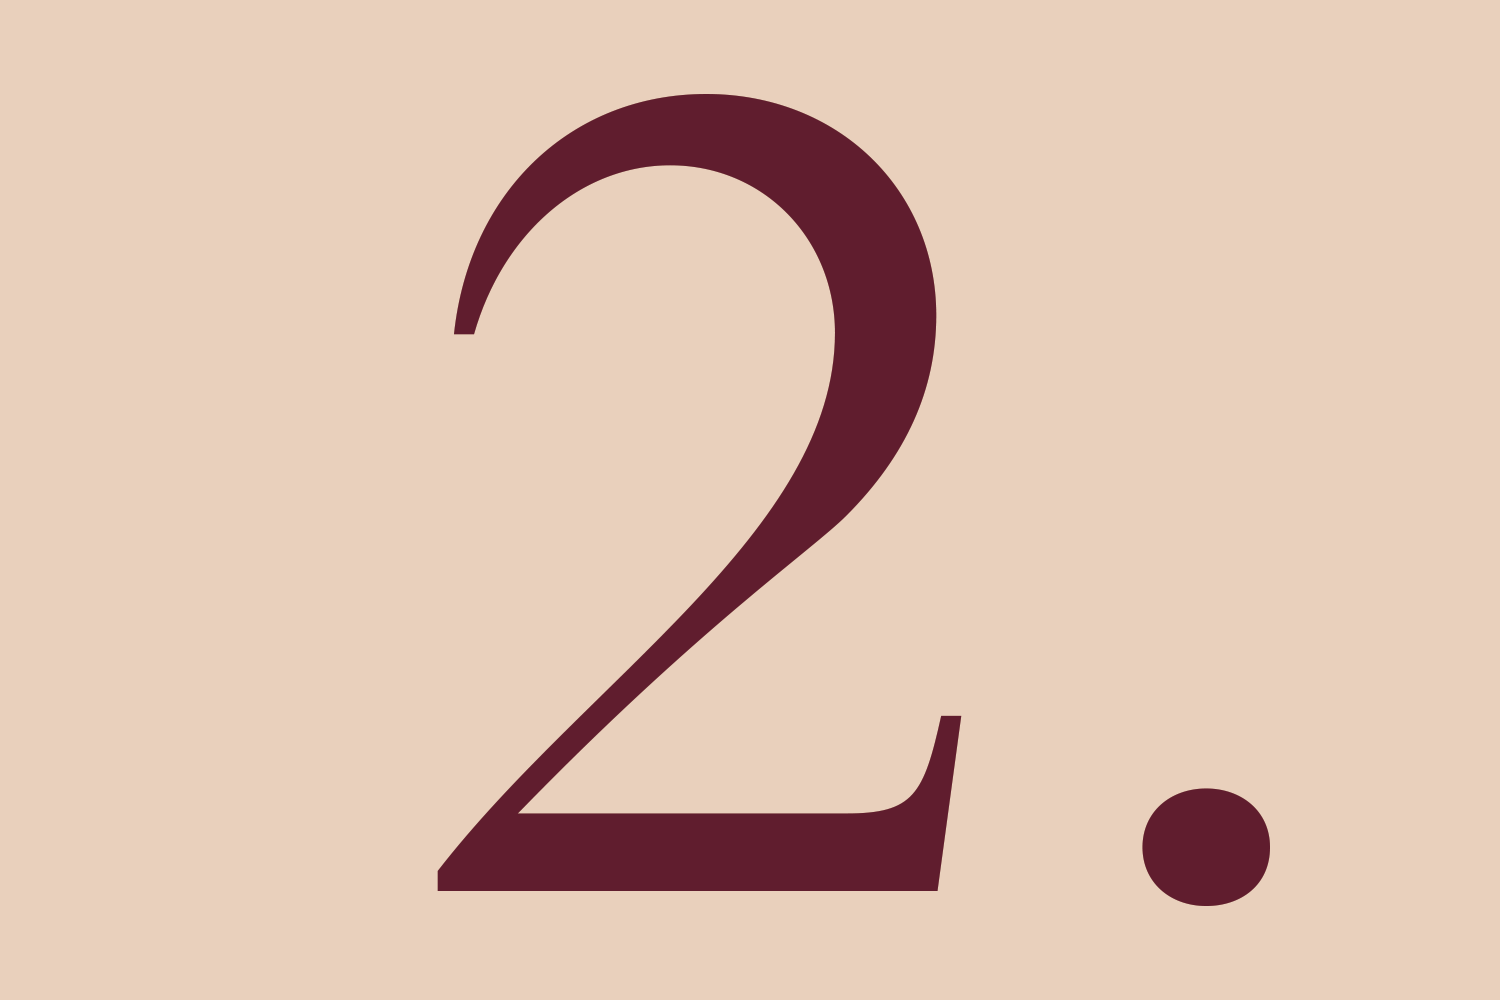 number2.png